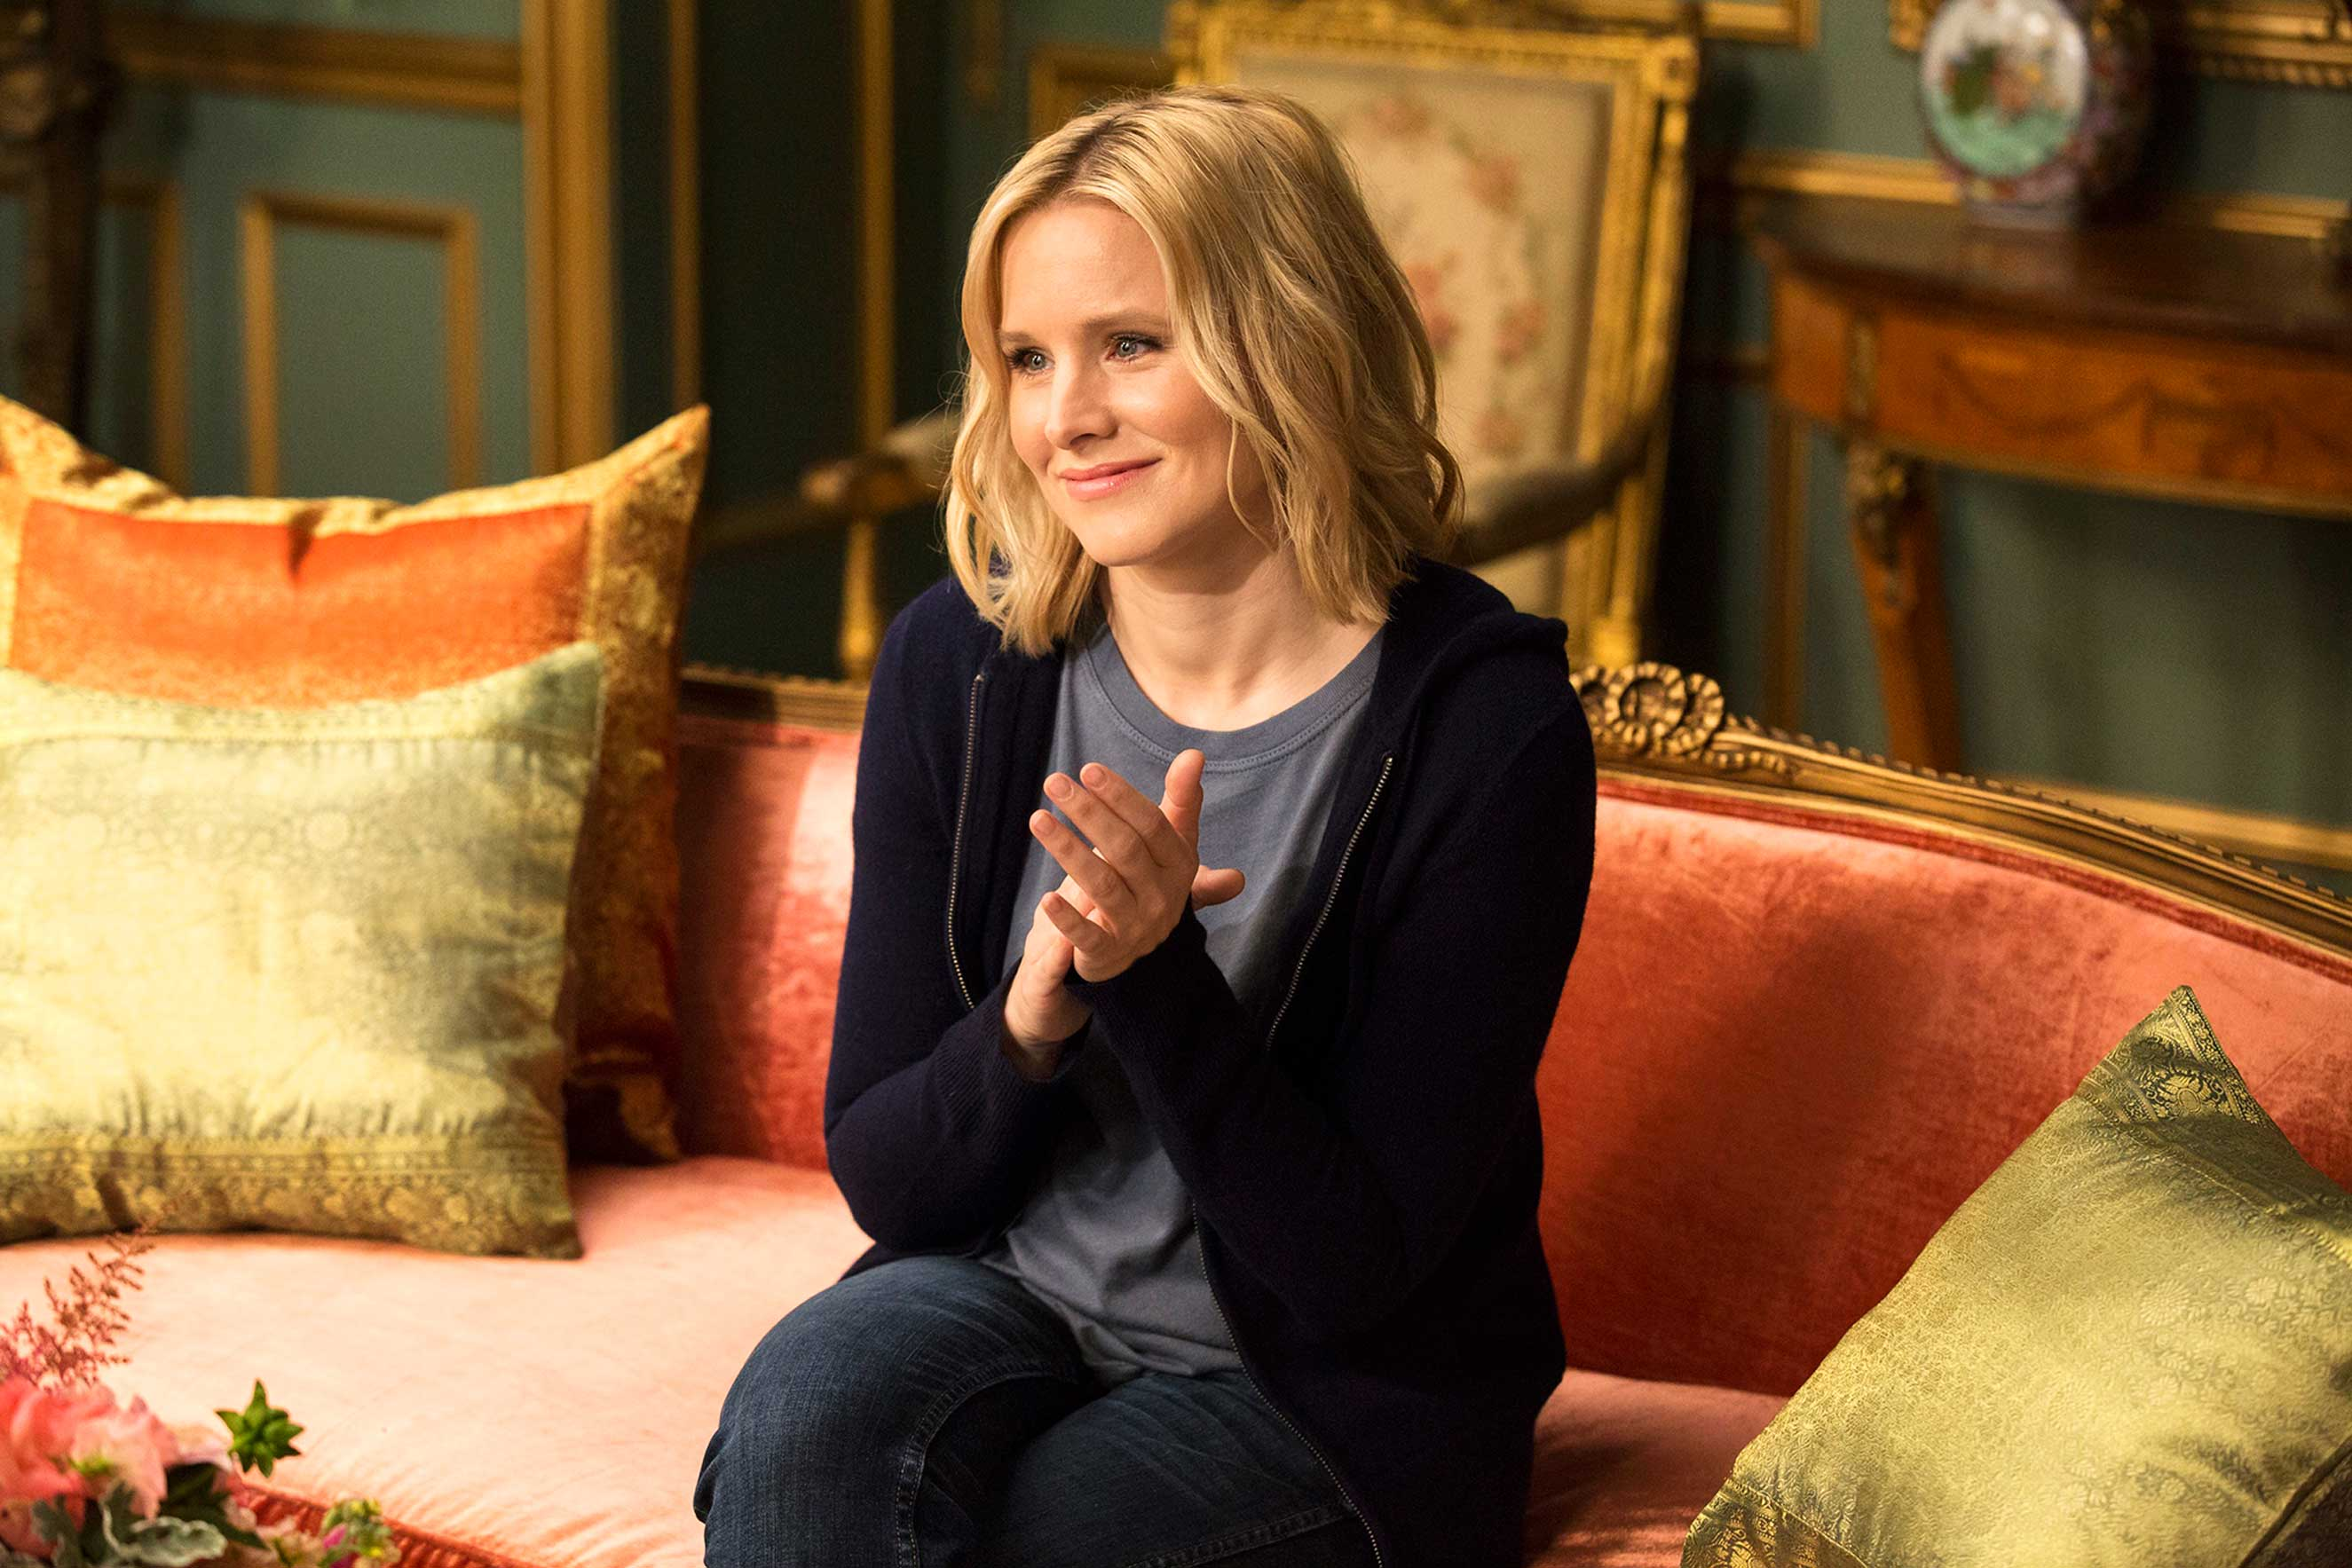 Kristen Bell as Eleanor in The Good Place